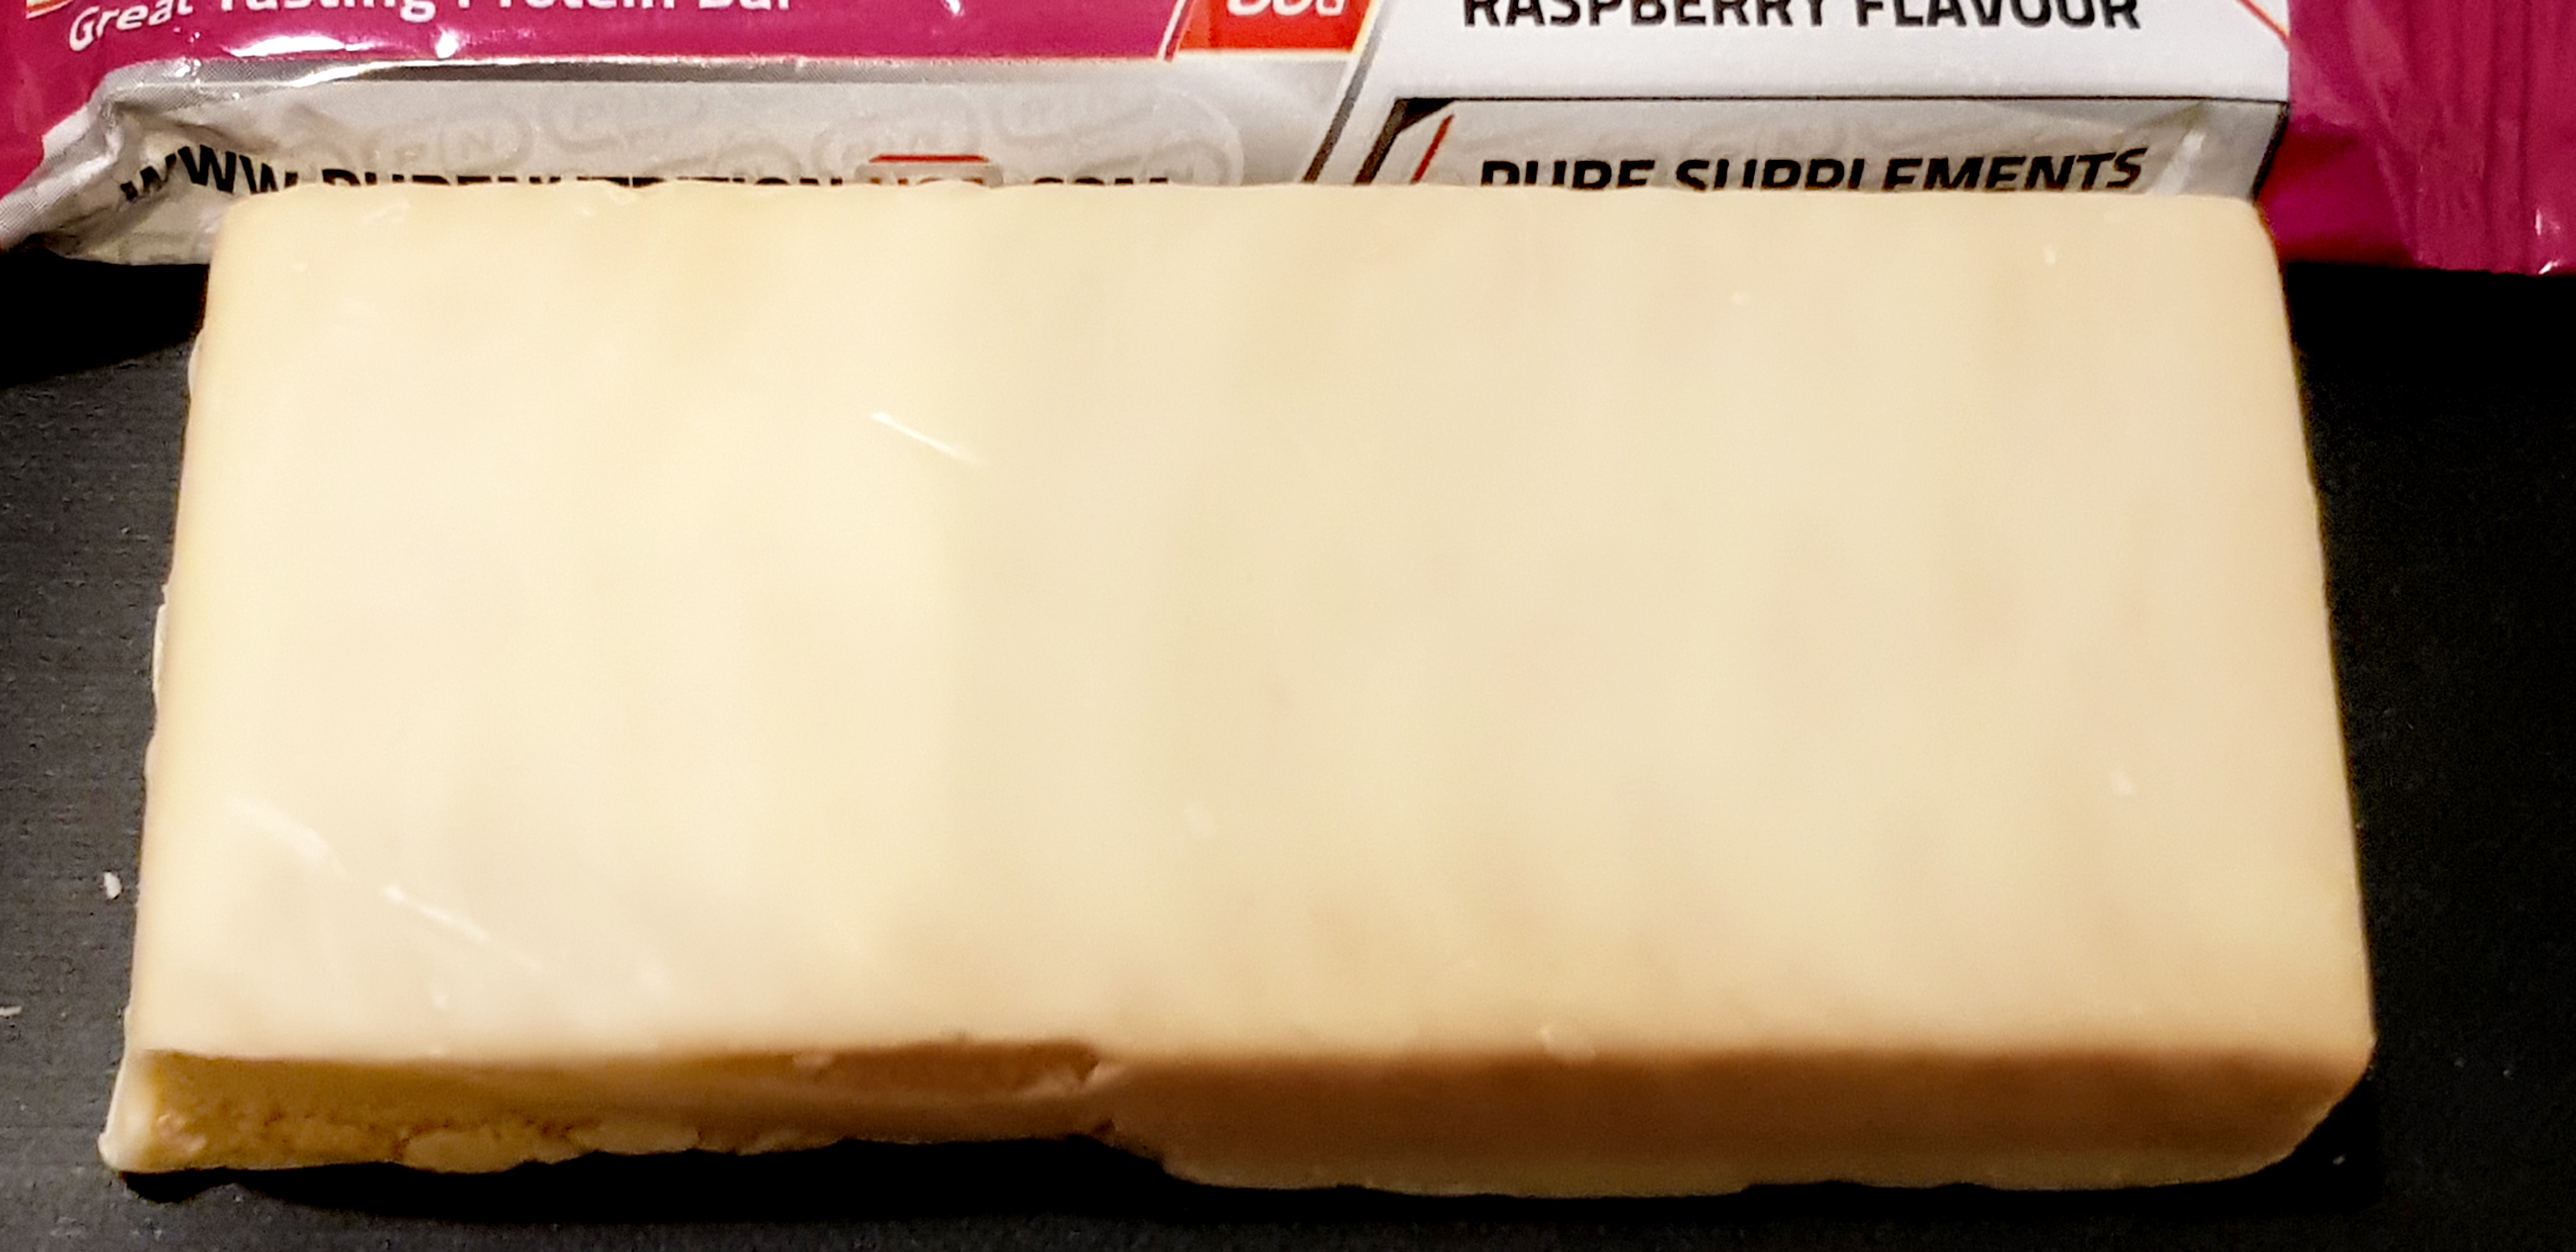 Pure Nutrition USA XL Protein Bar Raspberry review